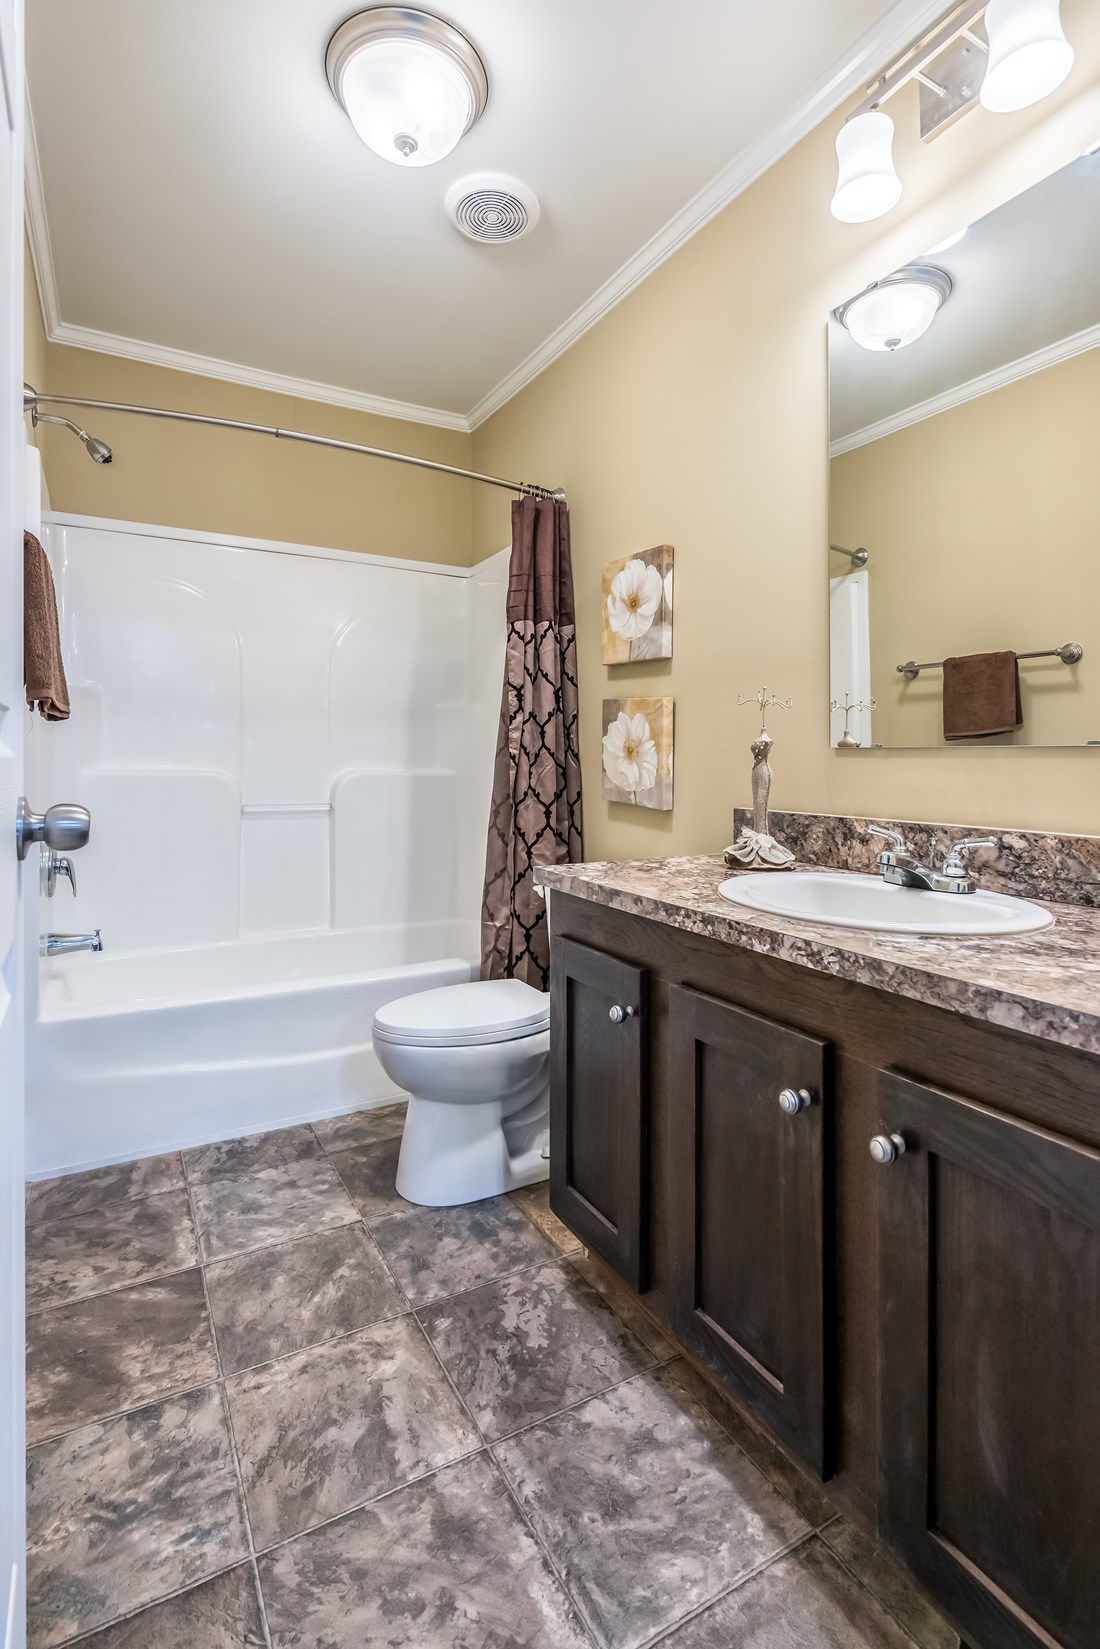 The 1779 LEGACY Guest Bathroom. This Manufactured Mobile Home features 3 bedrooms and 2 baths.